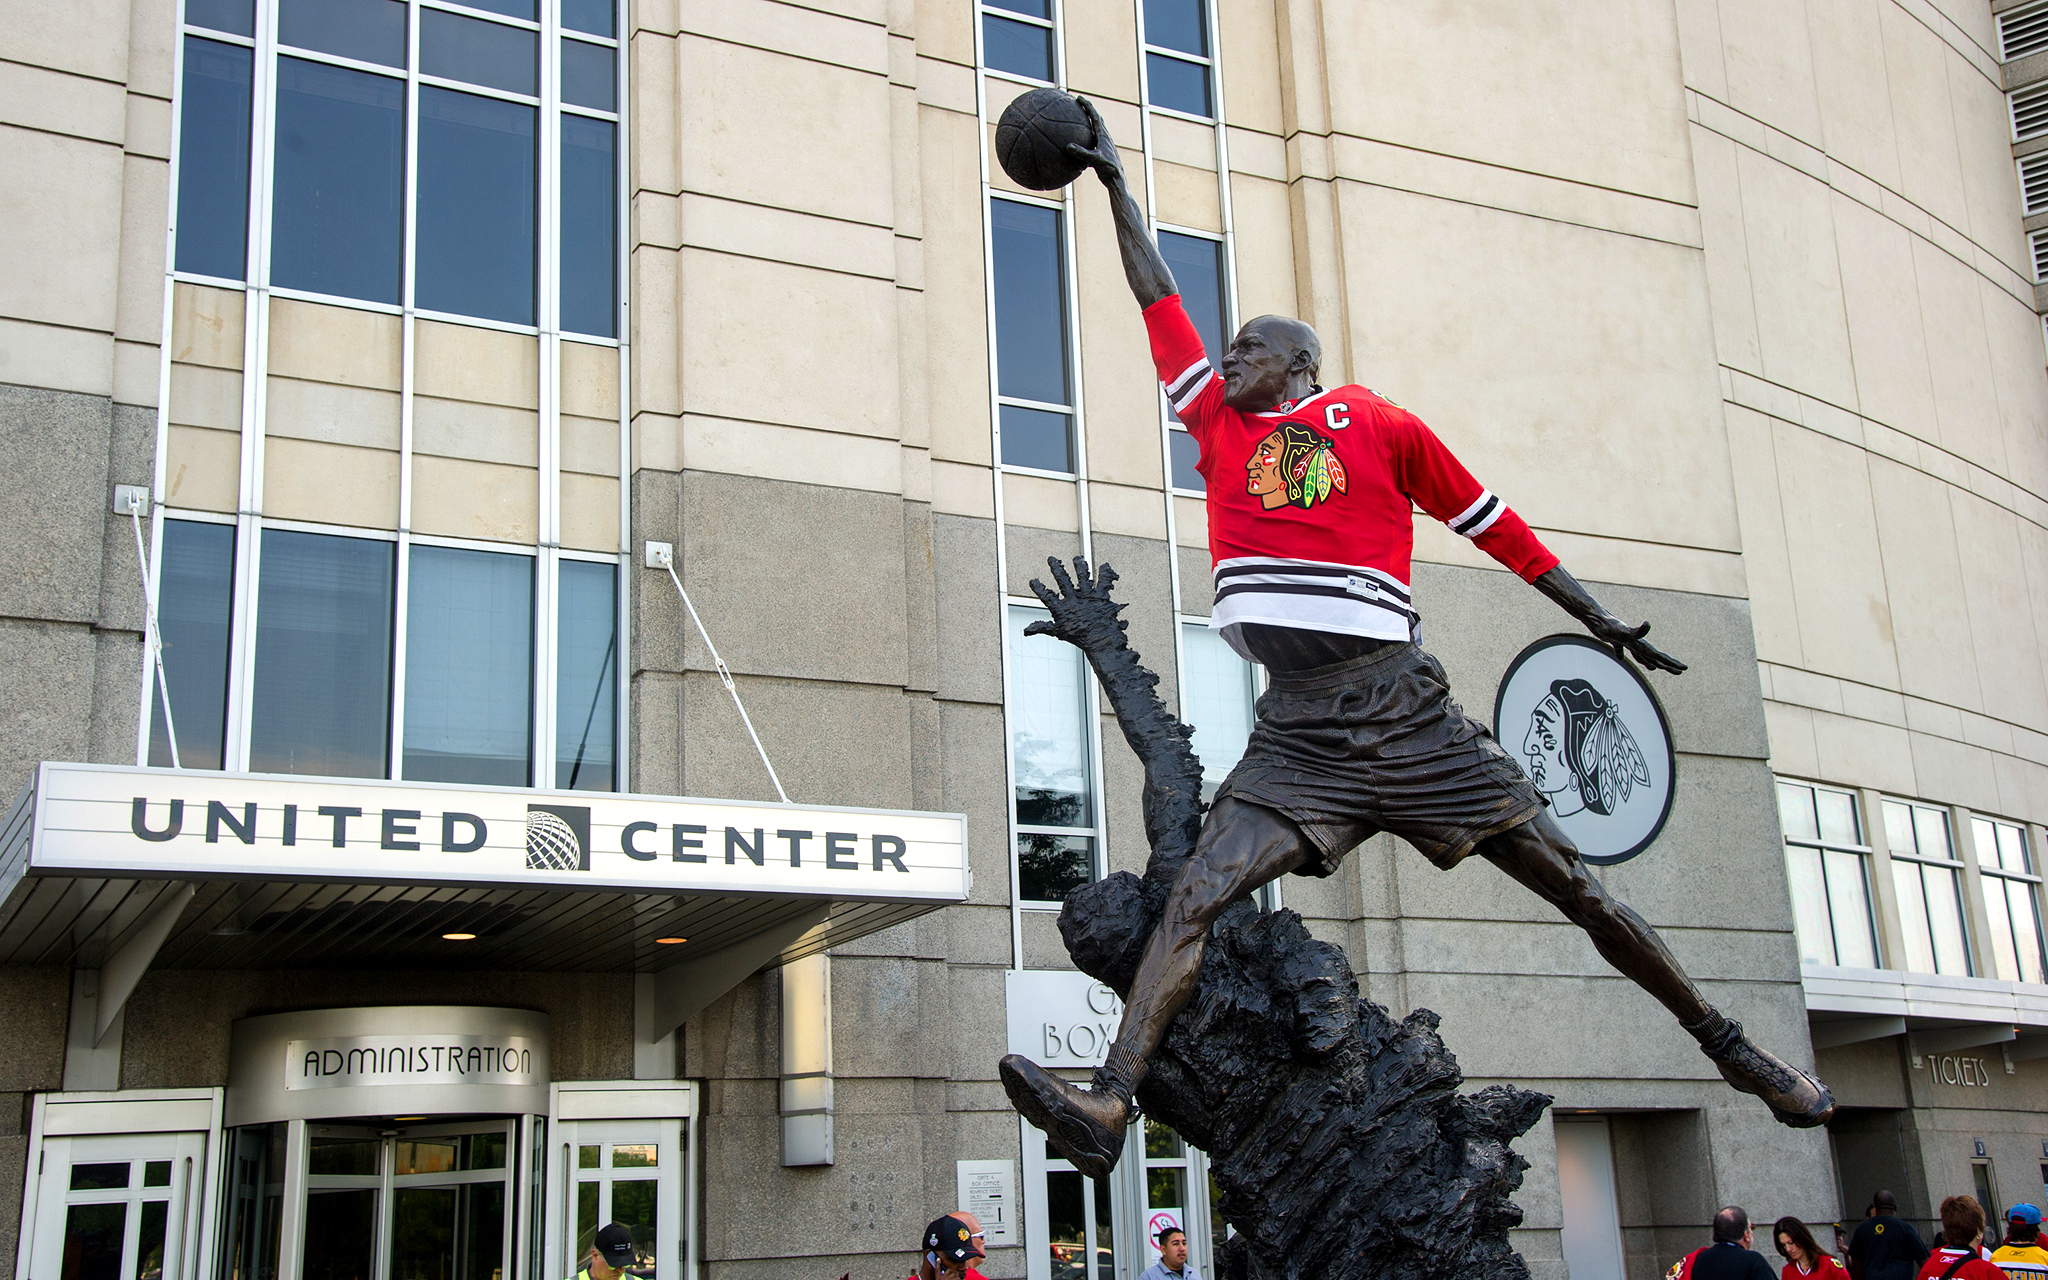 Michael Jordan, Blackhawks fan